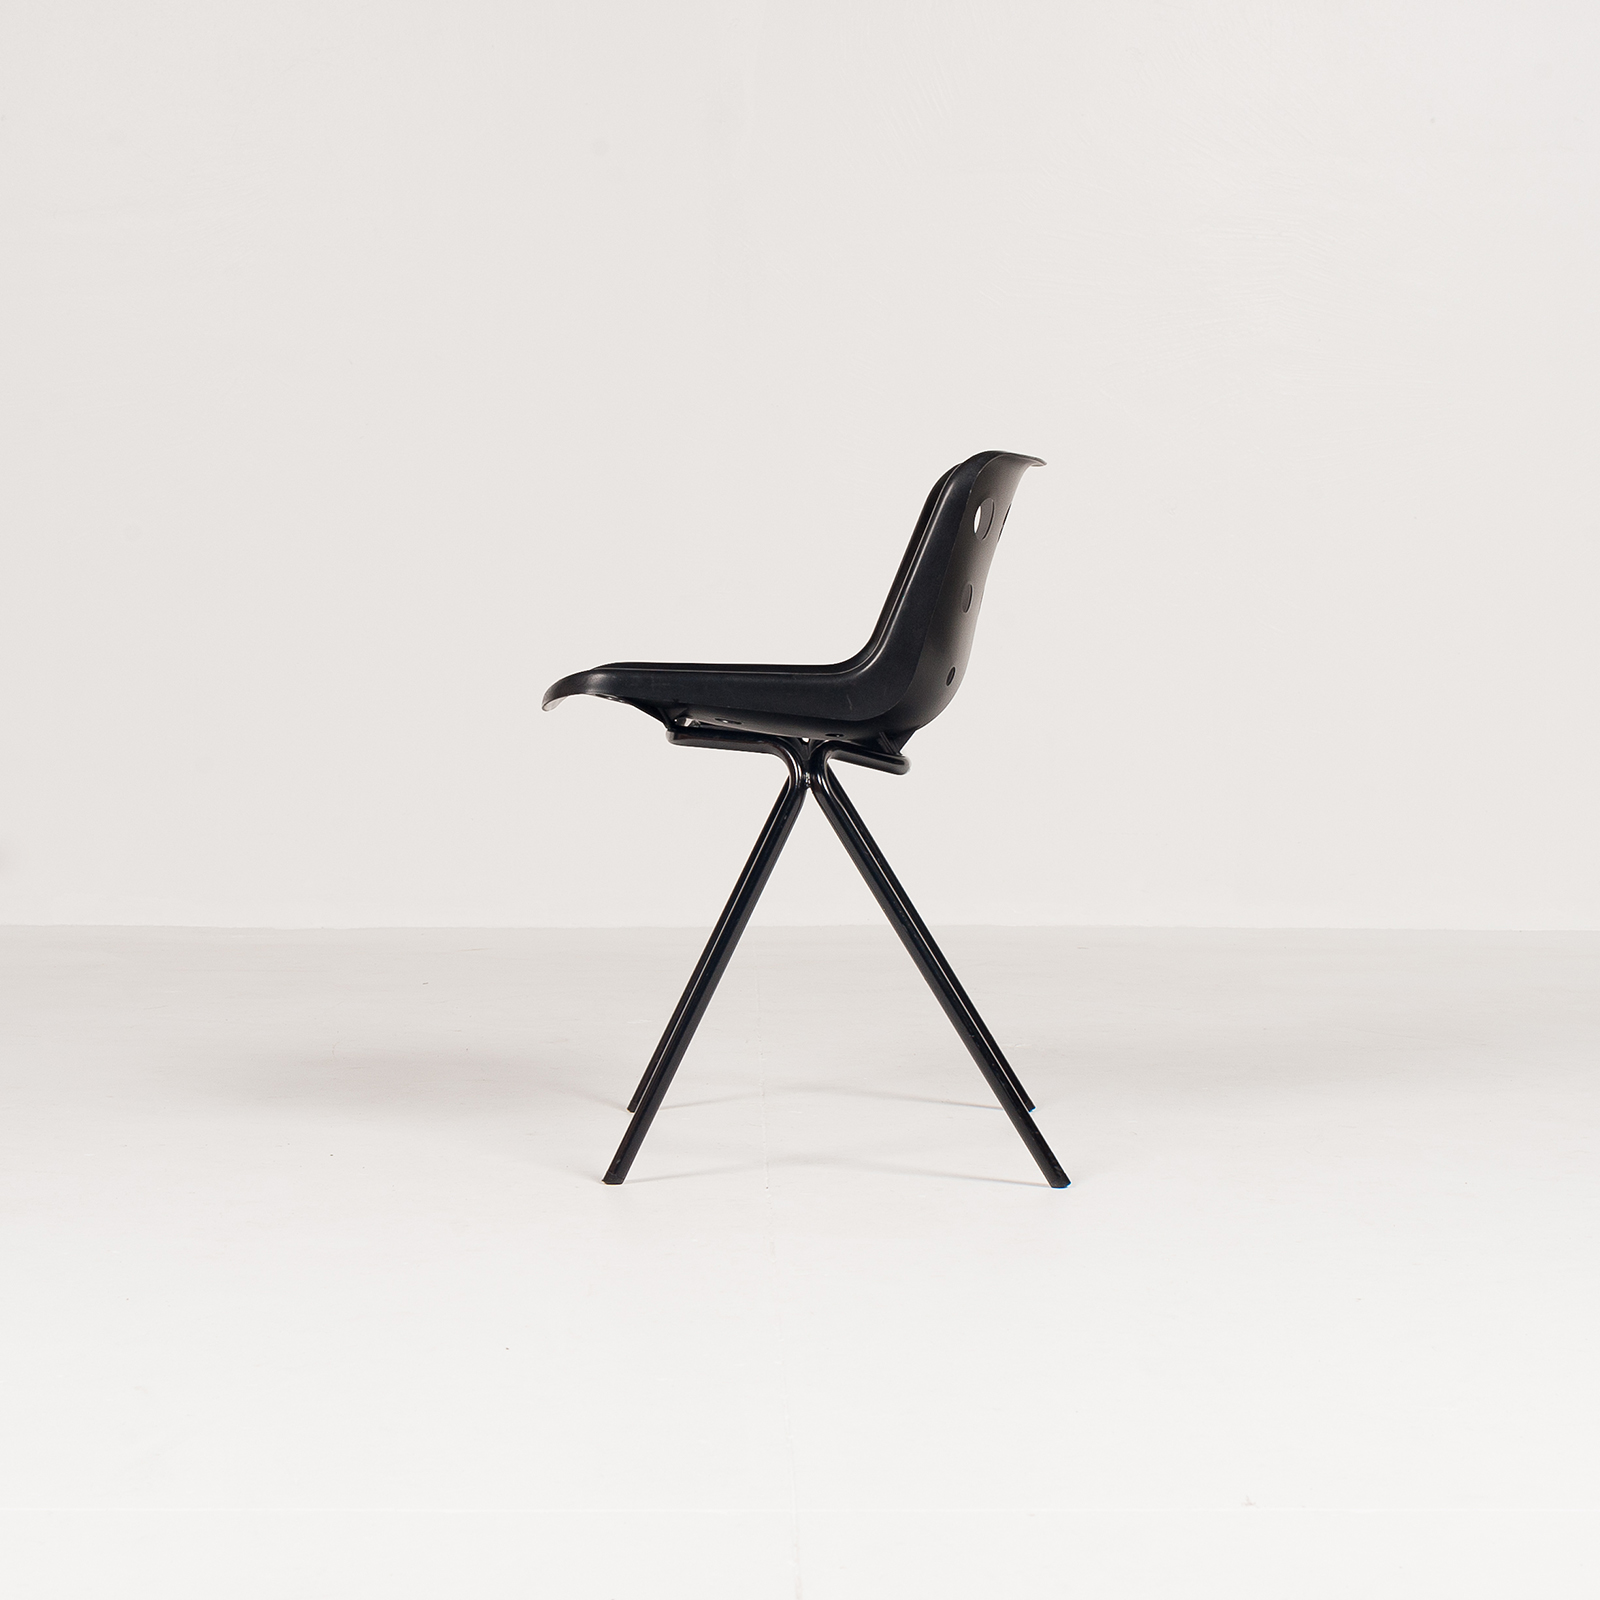 Polo Stacking Chair By Robin Day In Black Polyproylene, 1970s, England5881